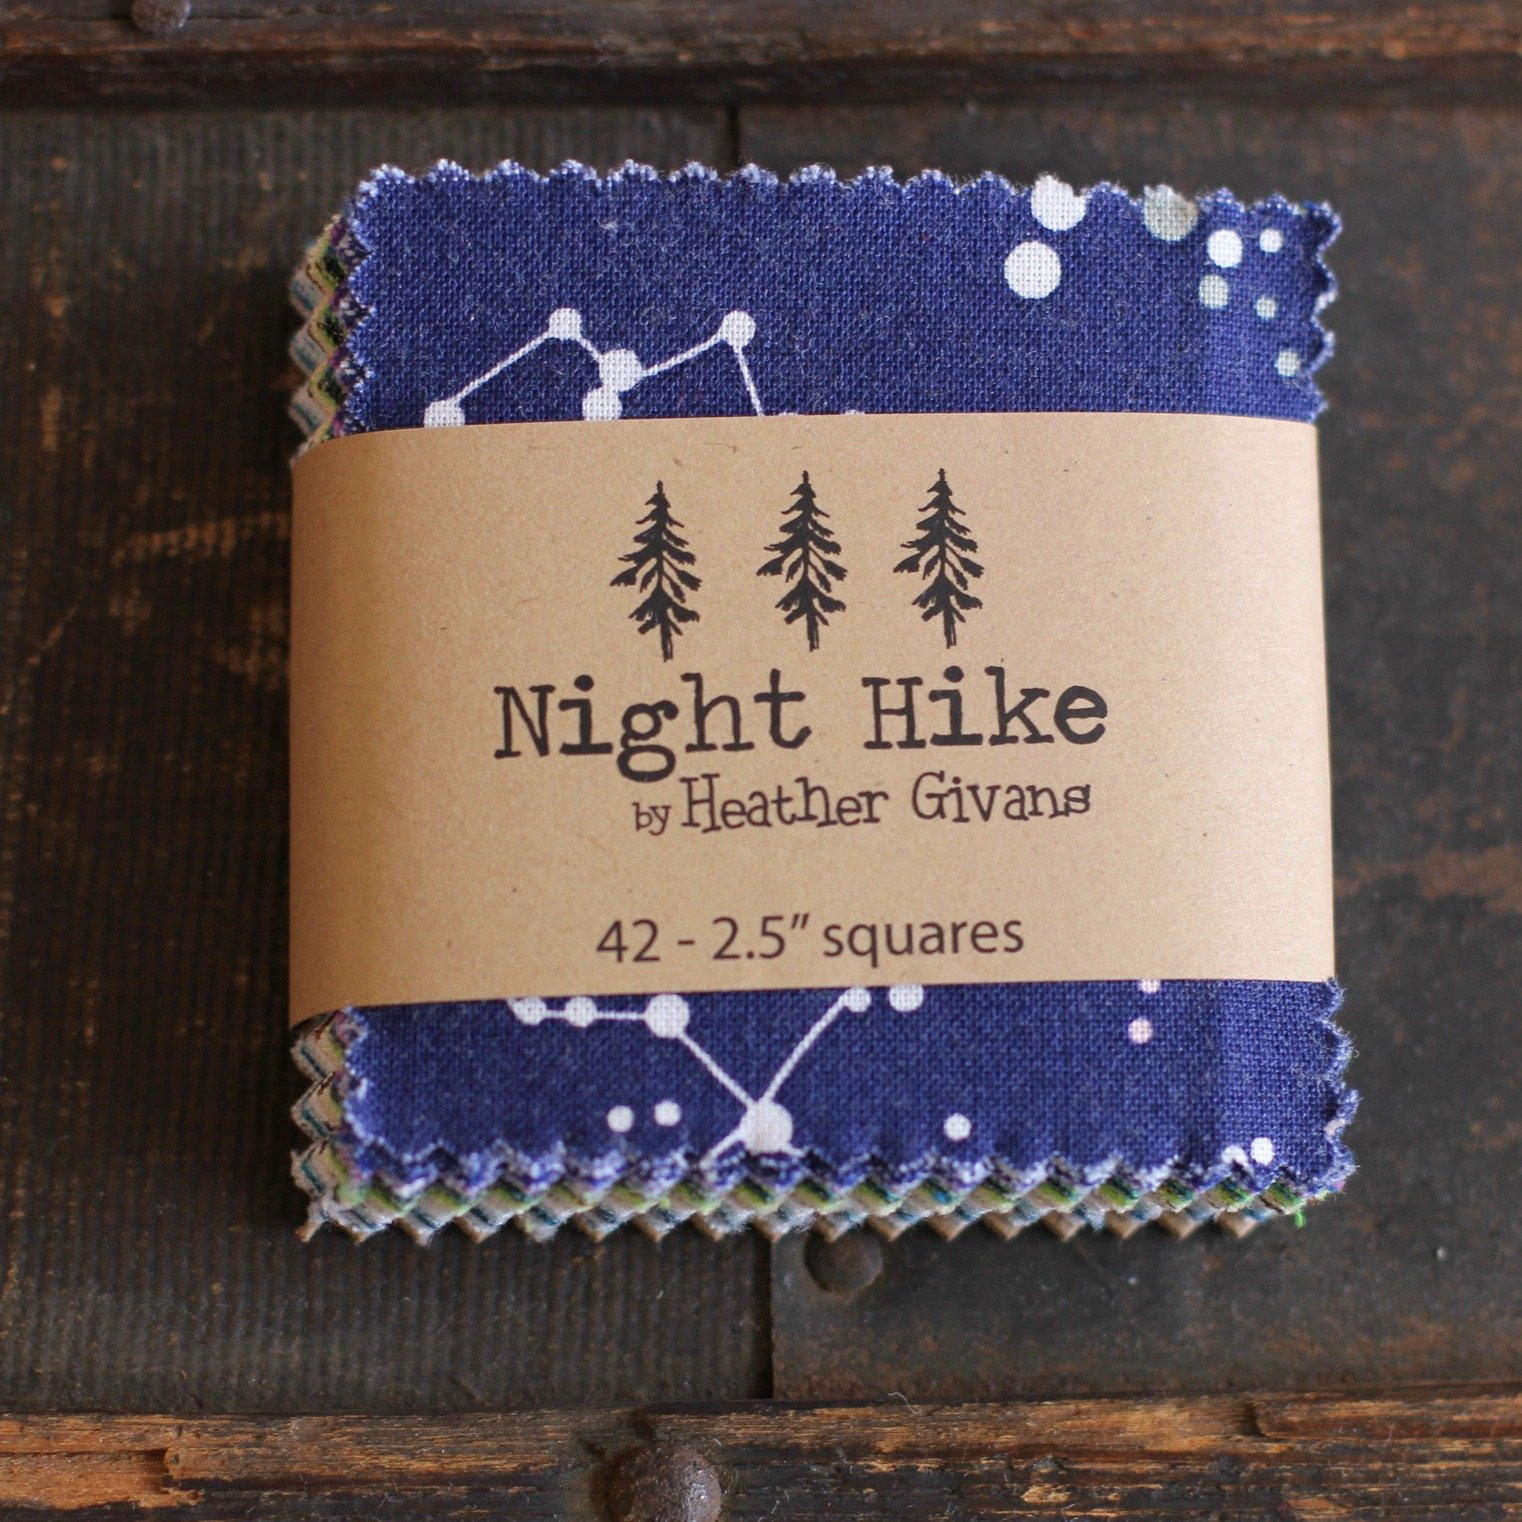 Night Hike Mini Charms - (42) 2.5 squares